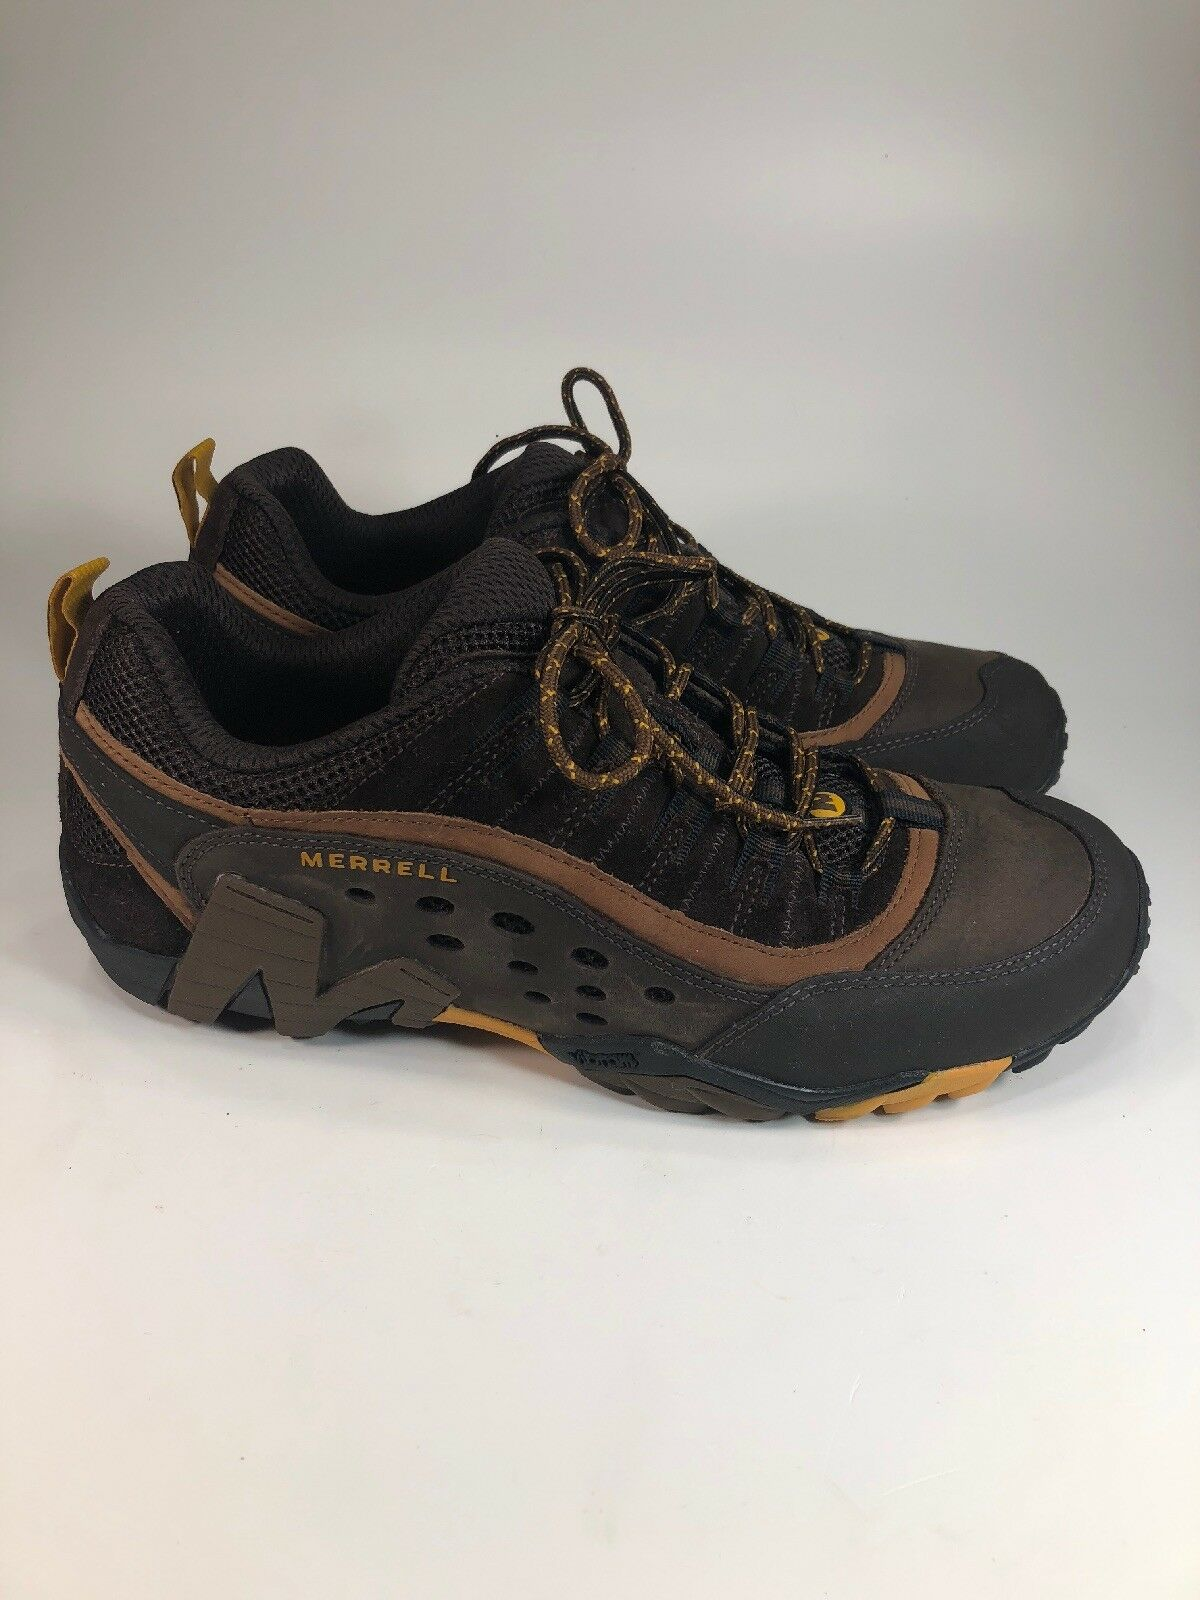 Merrell Axis 2 Nearly NEW Espresso Vibram Trail Running shoes Mens Size 11 M